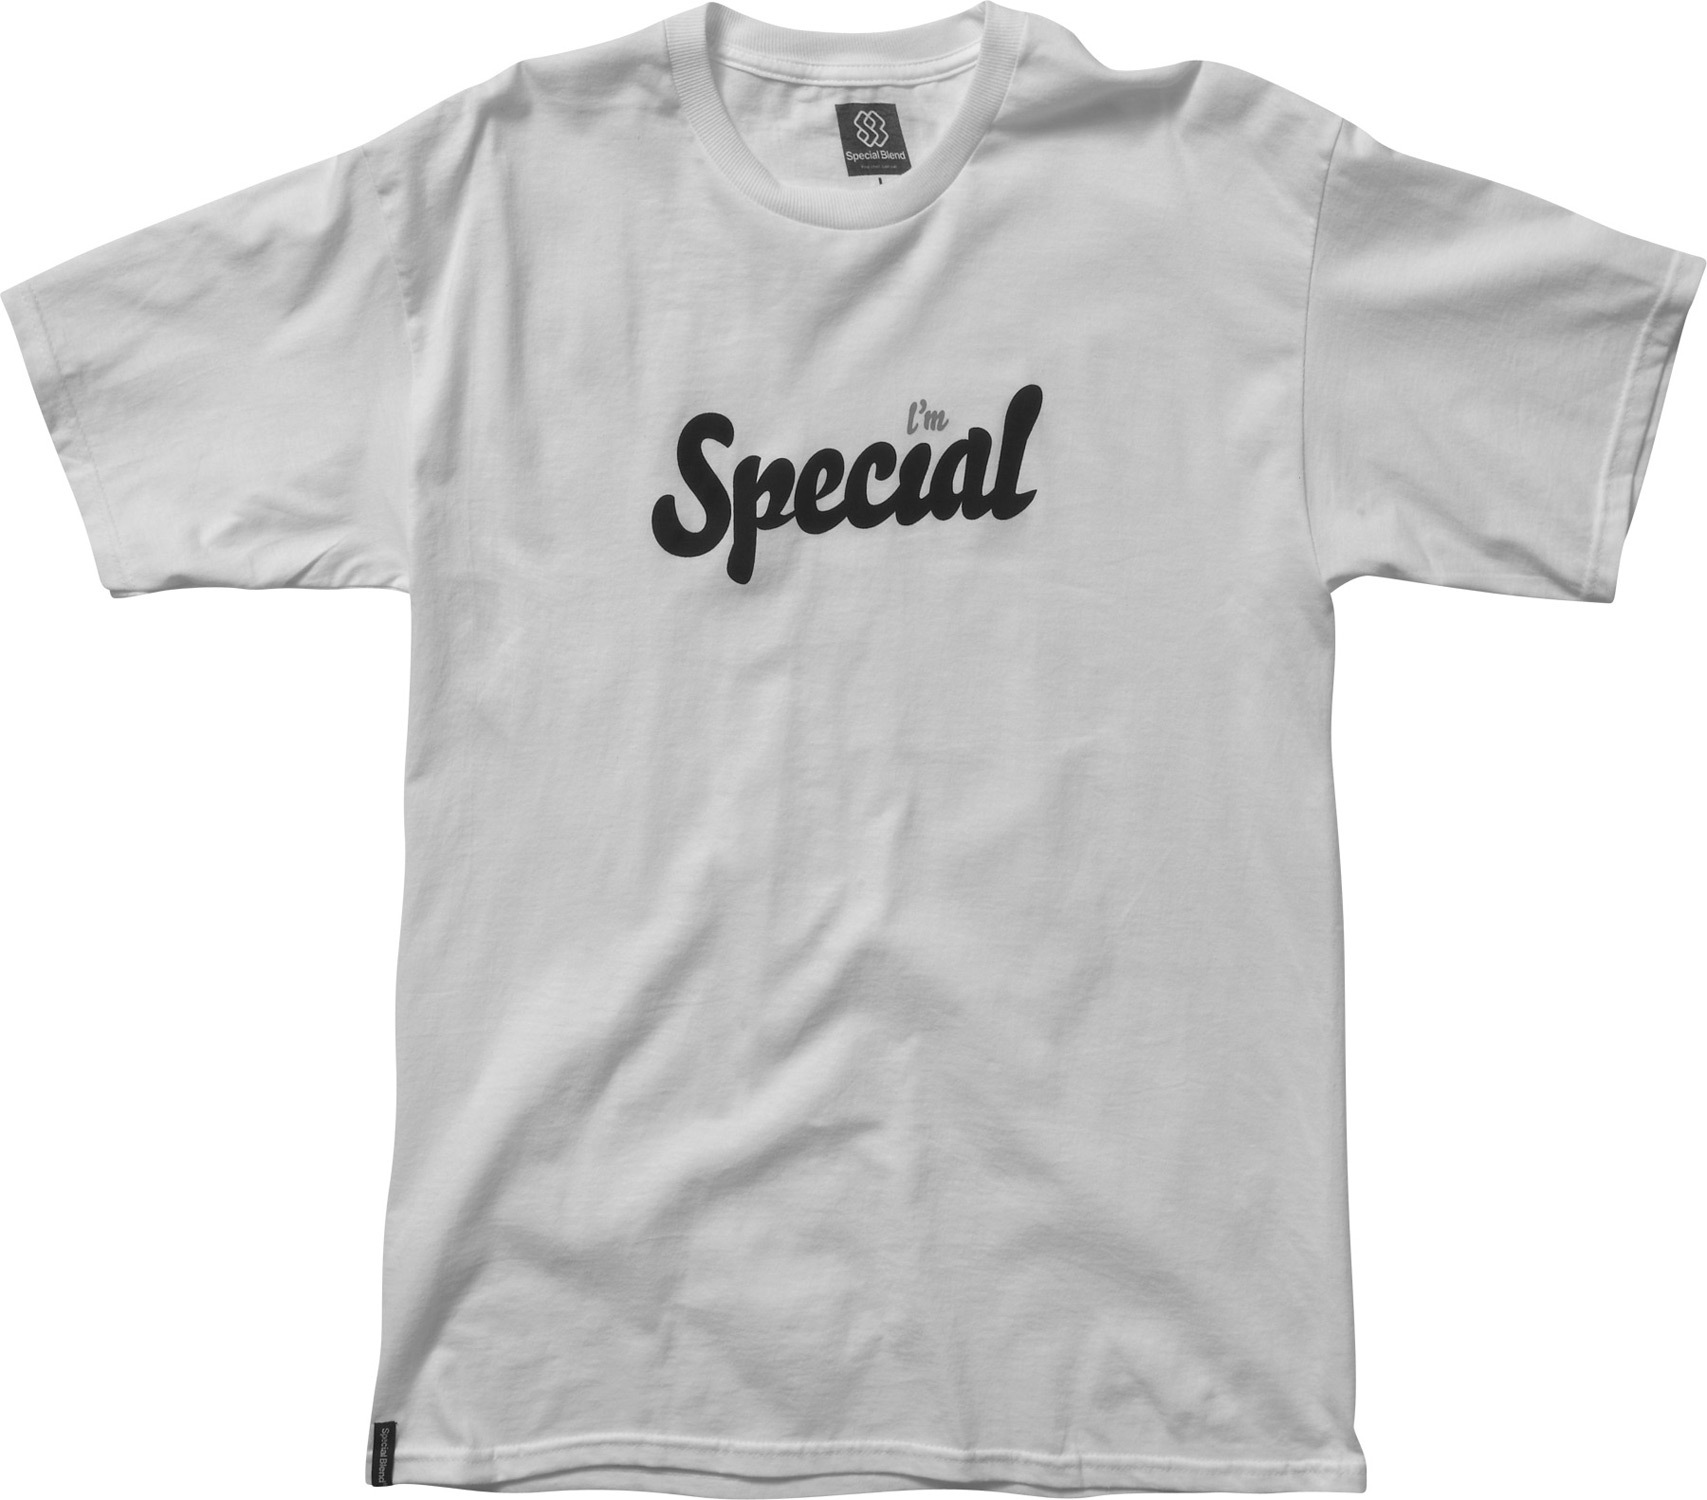 Key Features of the Special Blend I'm Special T-Shirt: Basic Tee / Freedom Fit Short Sleeve Tee 100% Ringspun Tubular Cotton, 5.5 Oz. Screenprint Art - $9.95